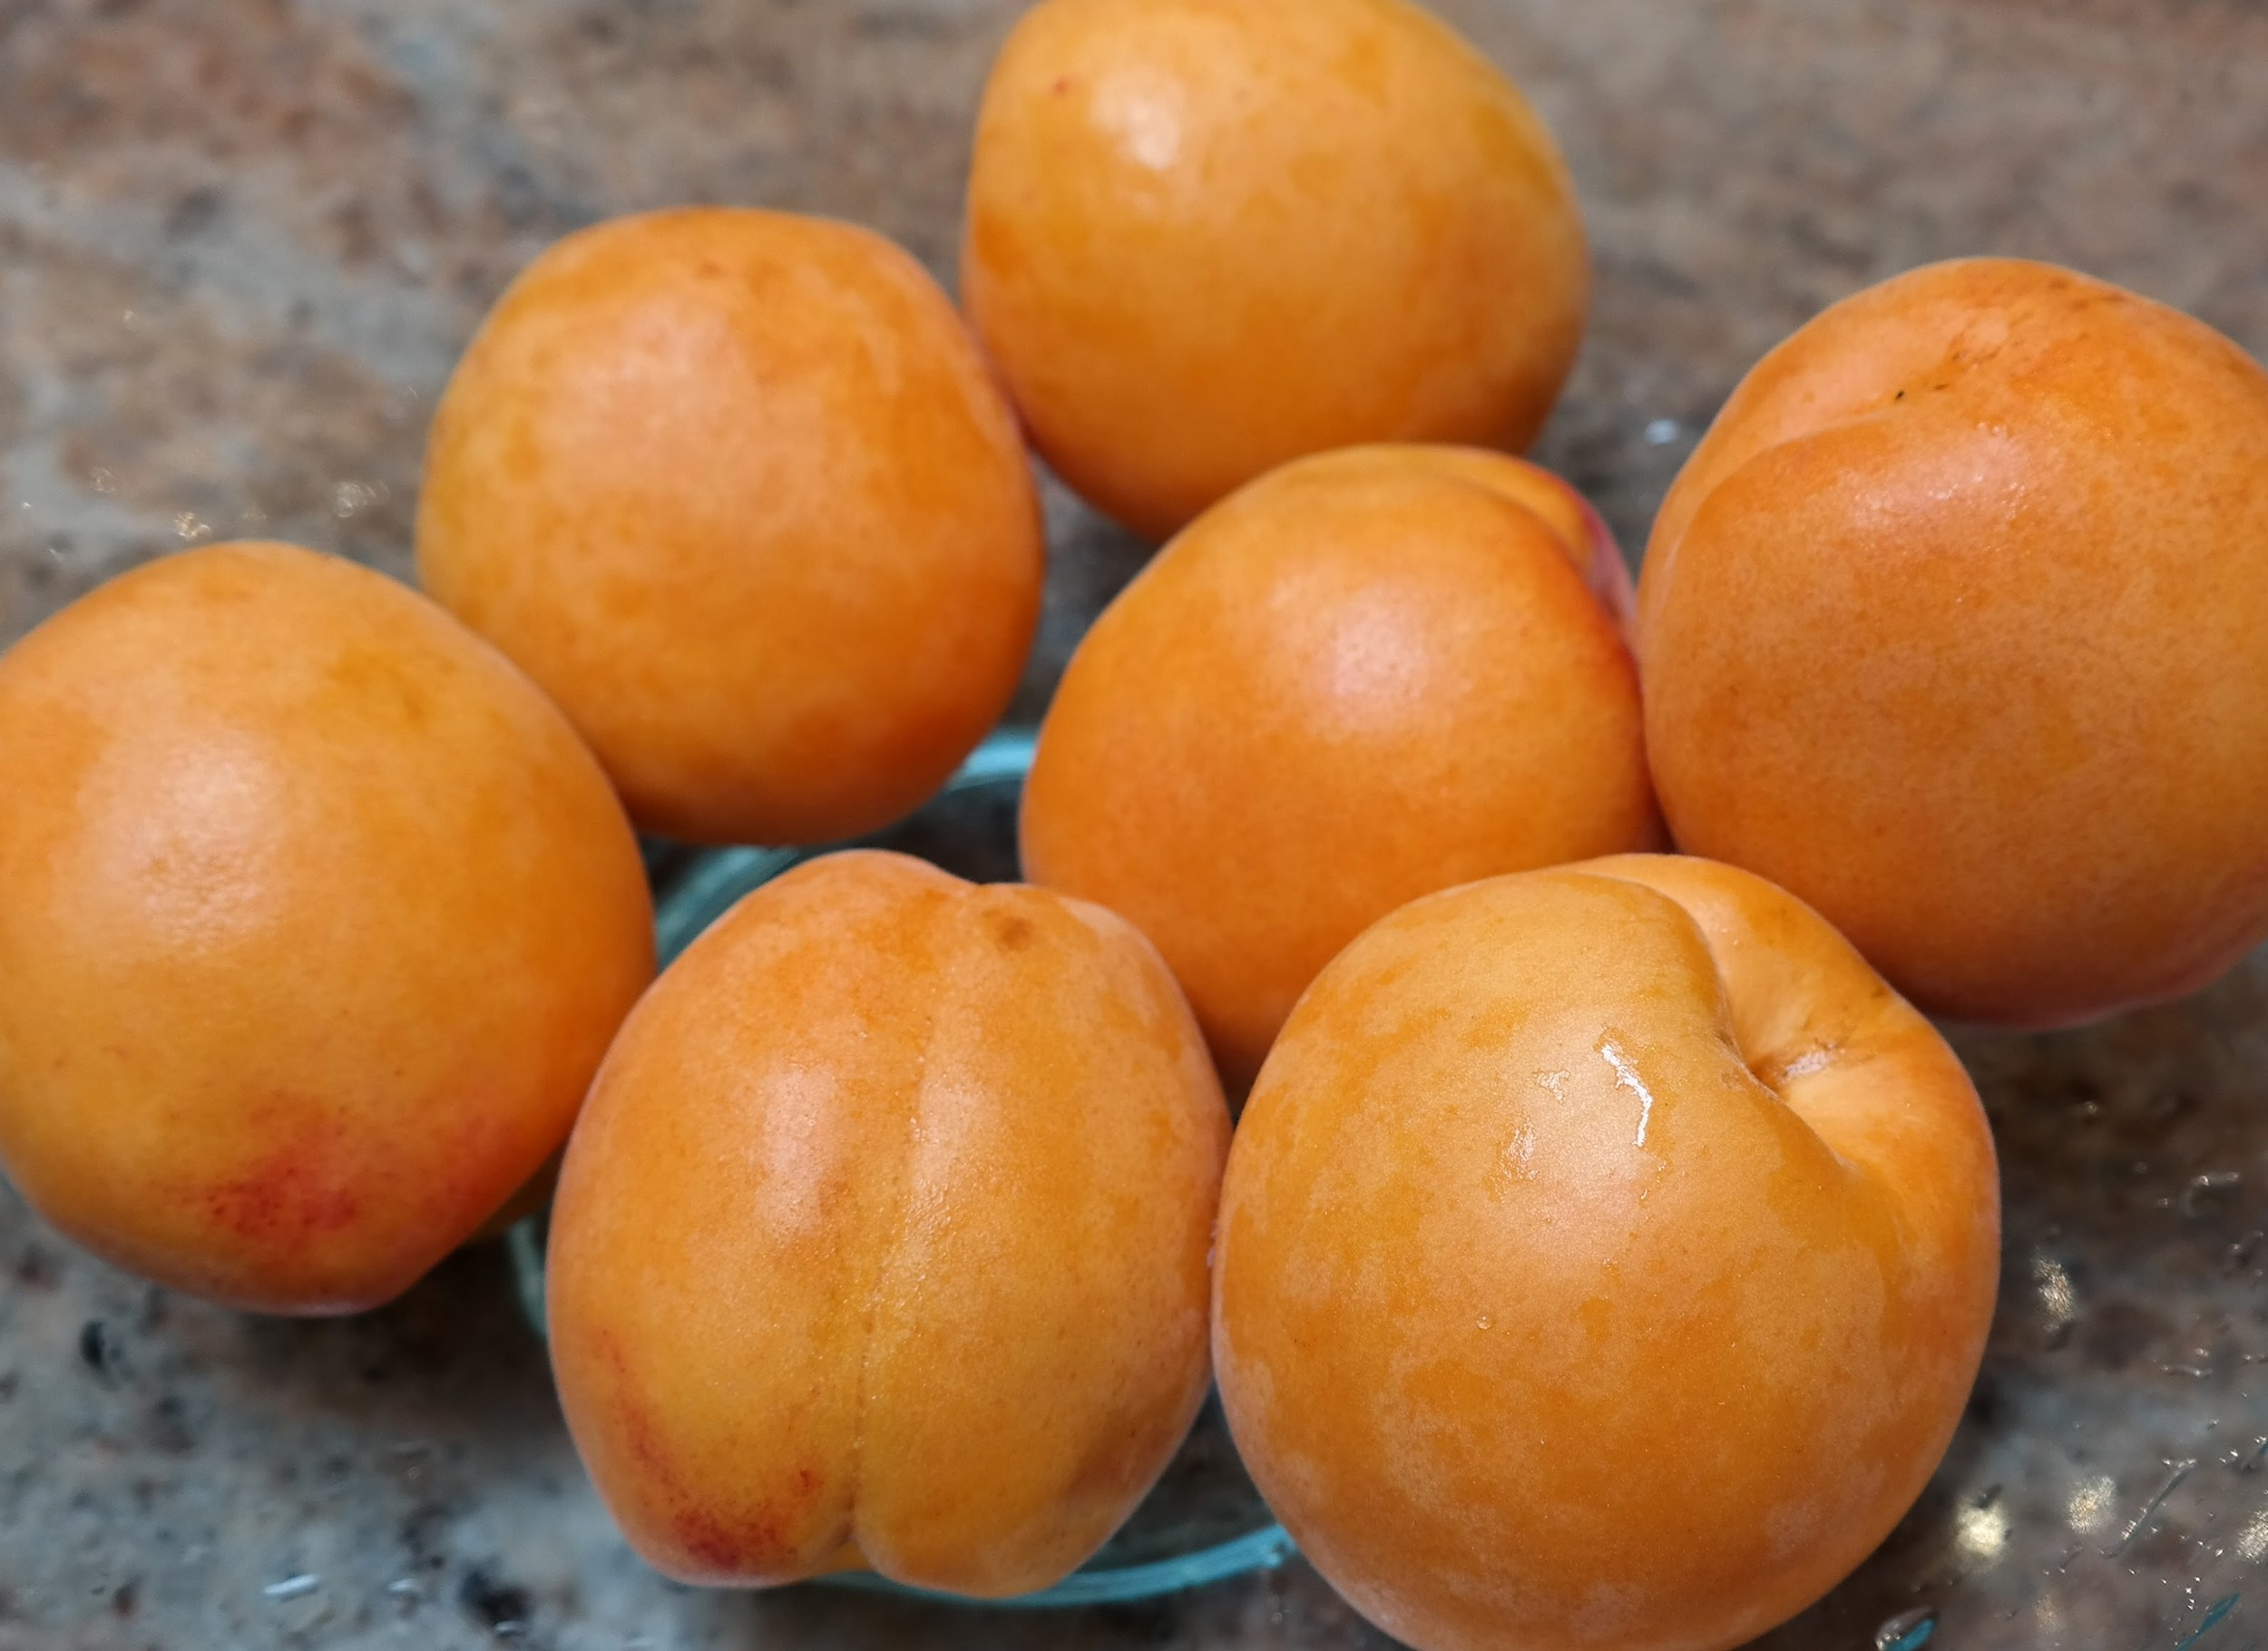 Maryhill apricots we found at NW grocers yesterday morning.